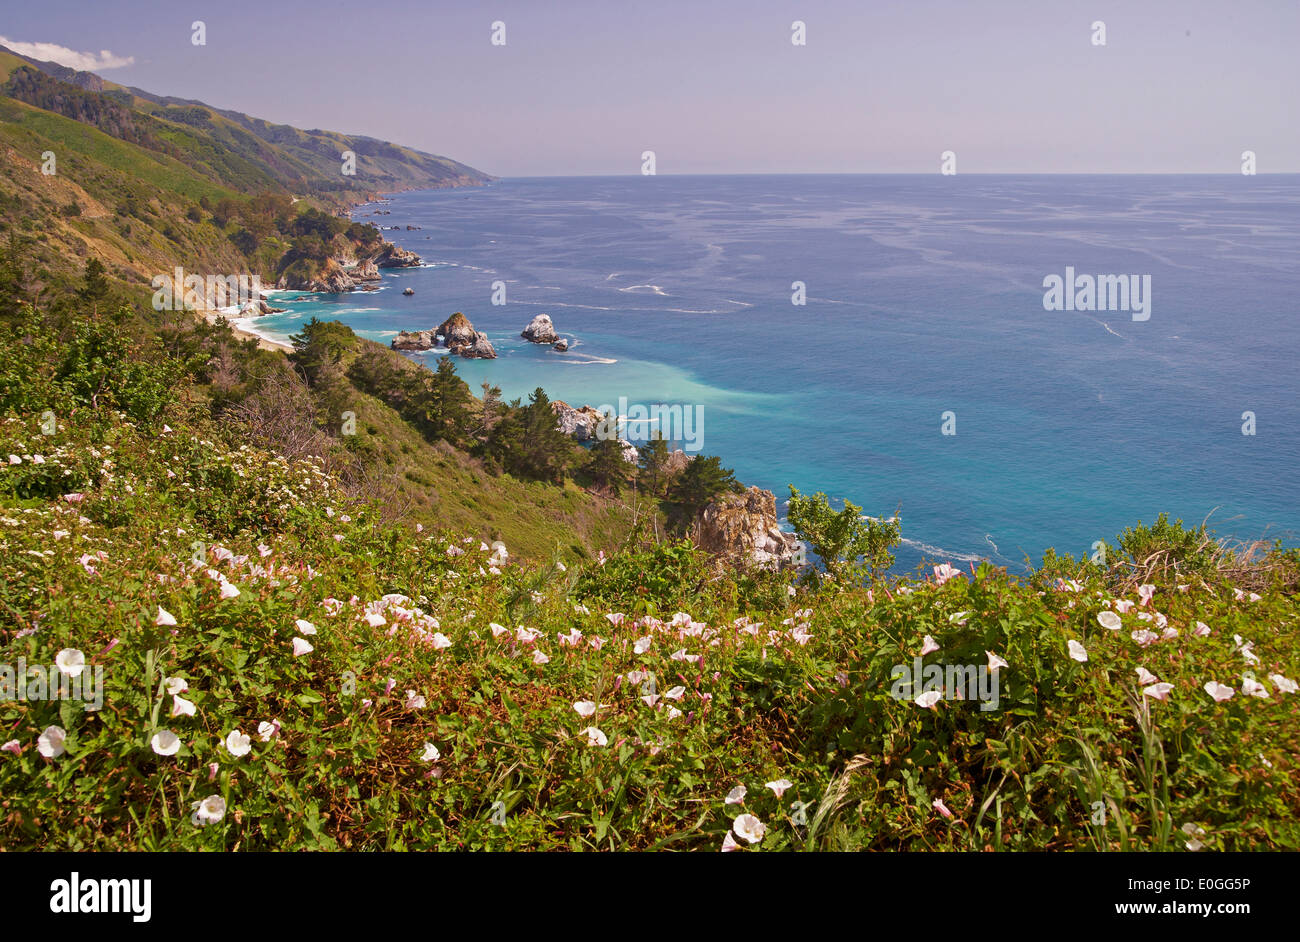 View of Pacific coast, Big Sur Coast bei Big Sur, All American Hwy, California, USA, America - Stock Image